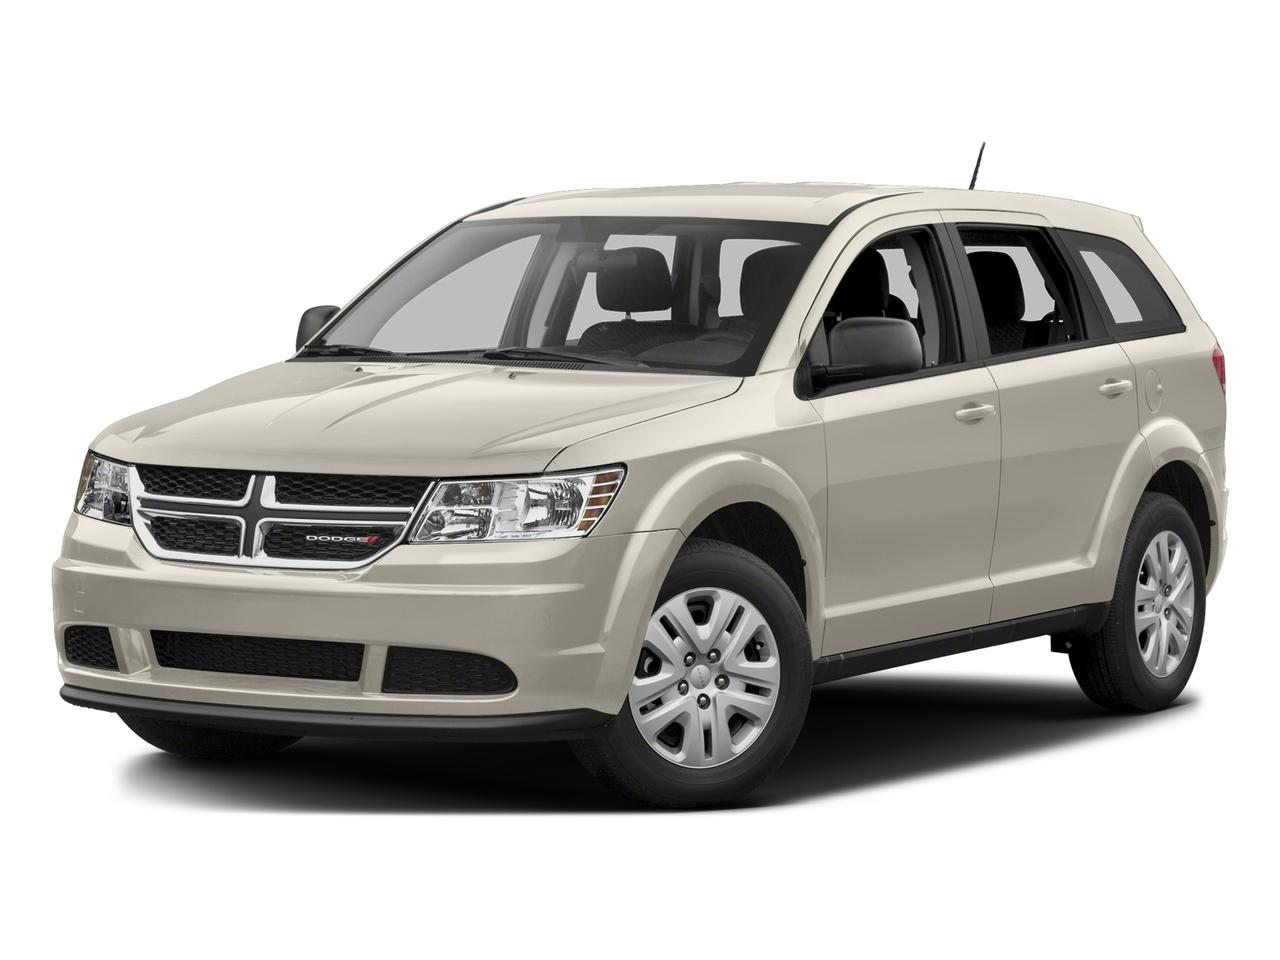 2015 Dodge Journey Vehicle Photo in Rockville, MD 20852